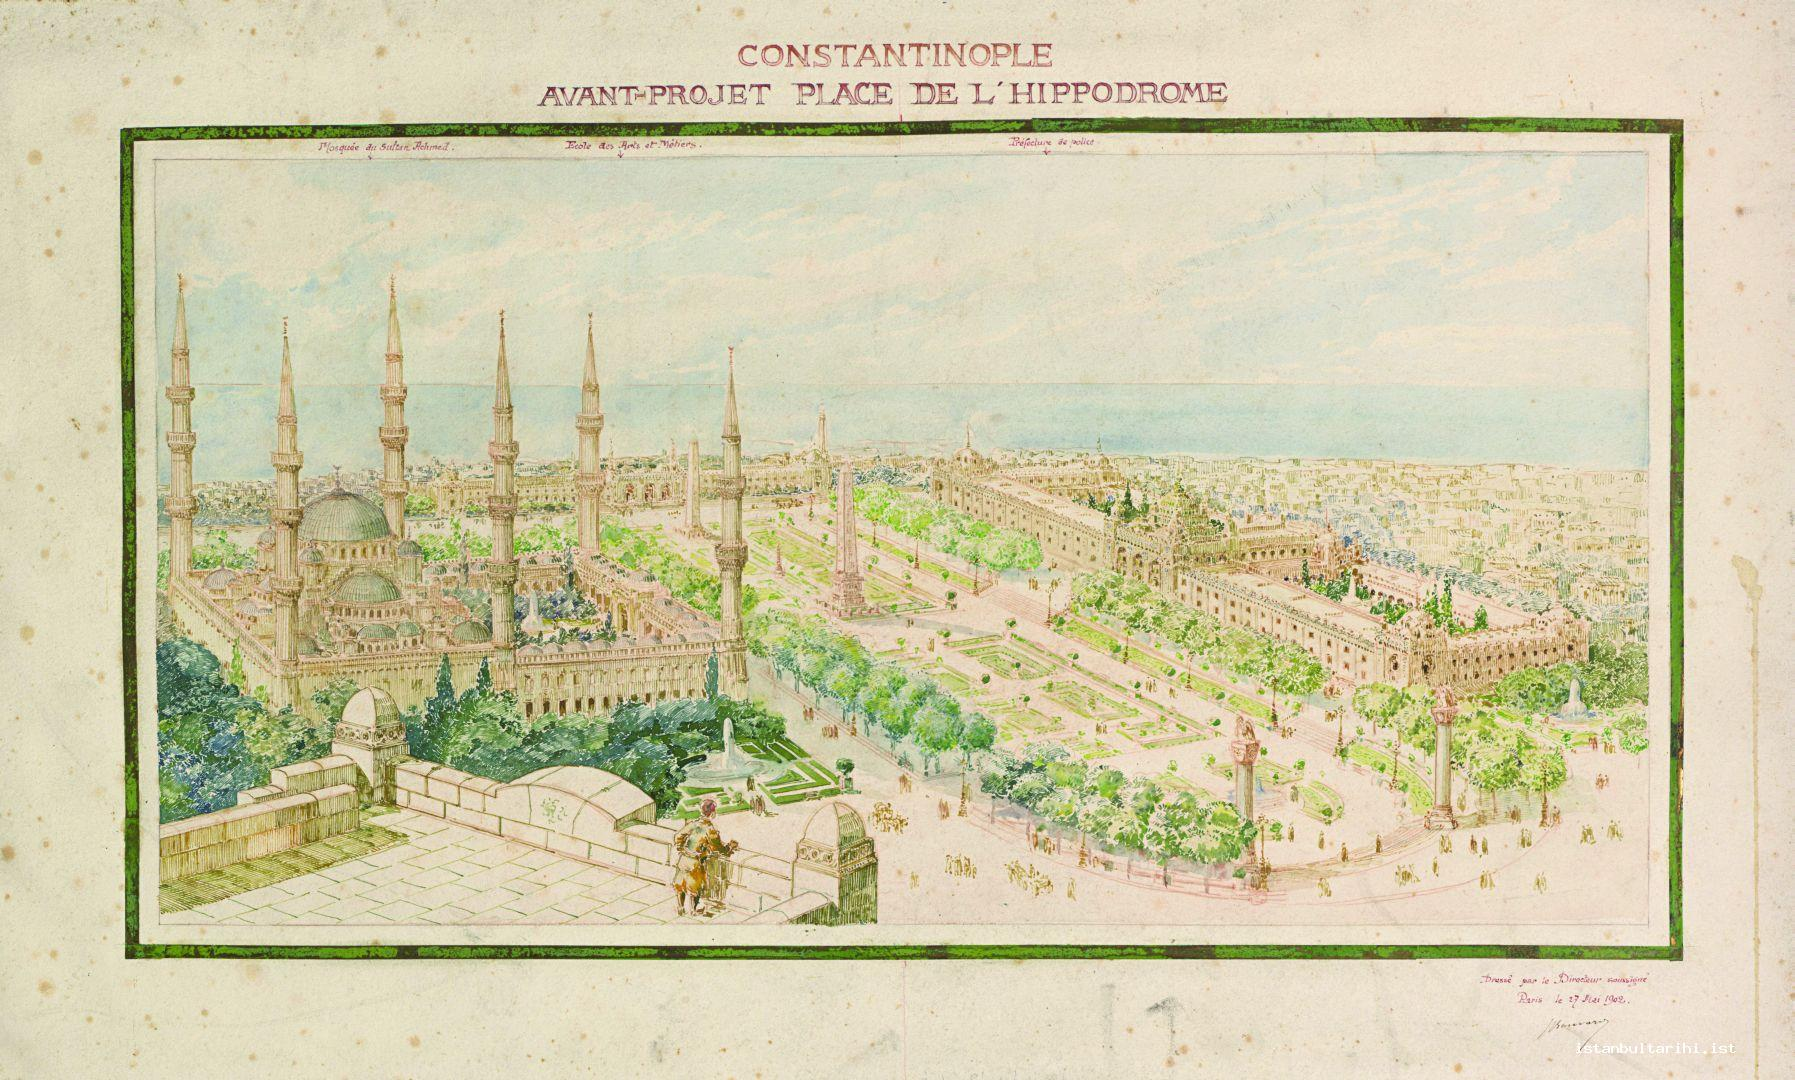 9- Antoine Bouvard's Horse Square (Hippodrome) Project (Istanbul University, Rare Books and Special Collections Library, Maps Section)